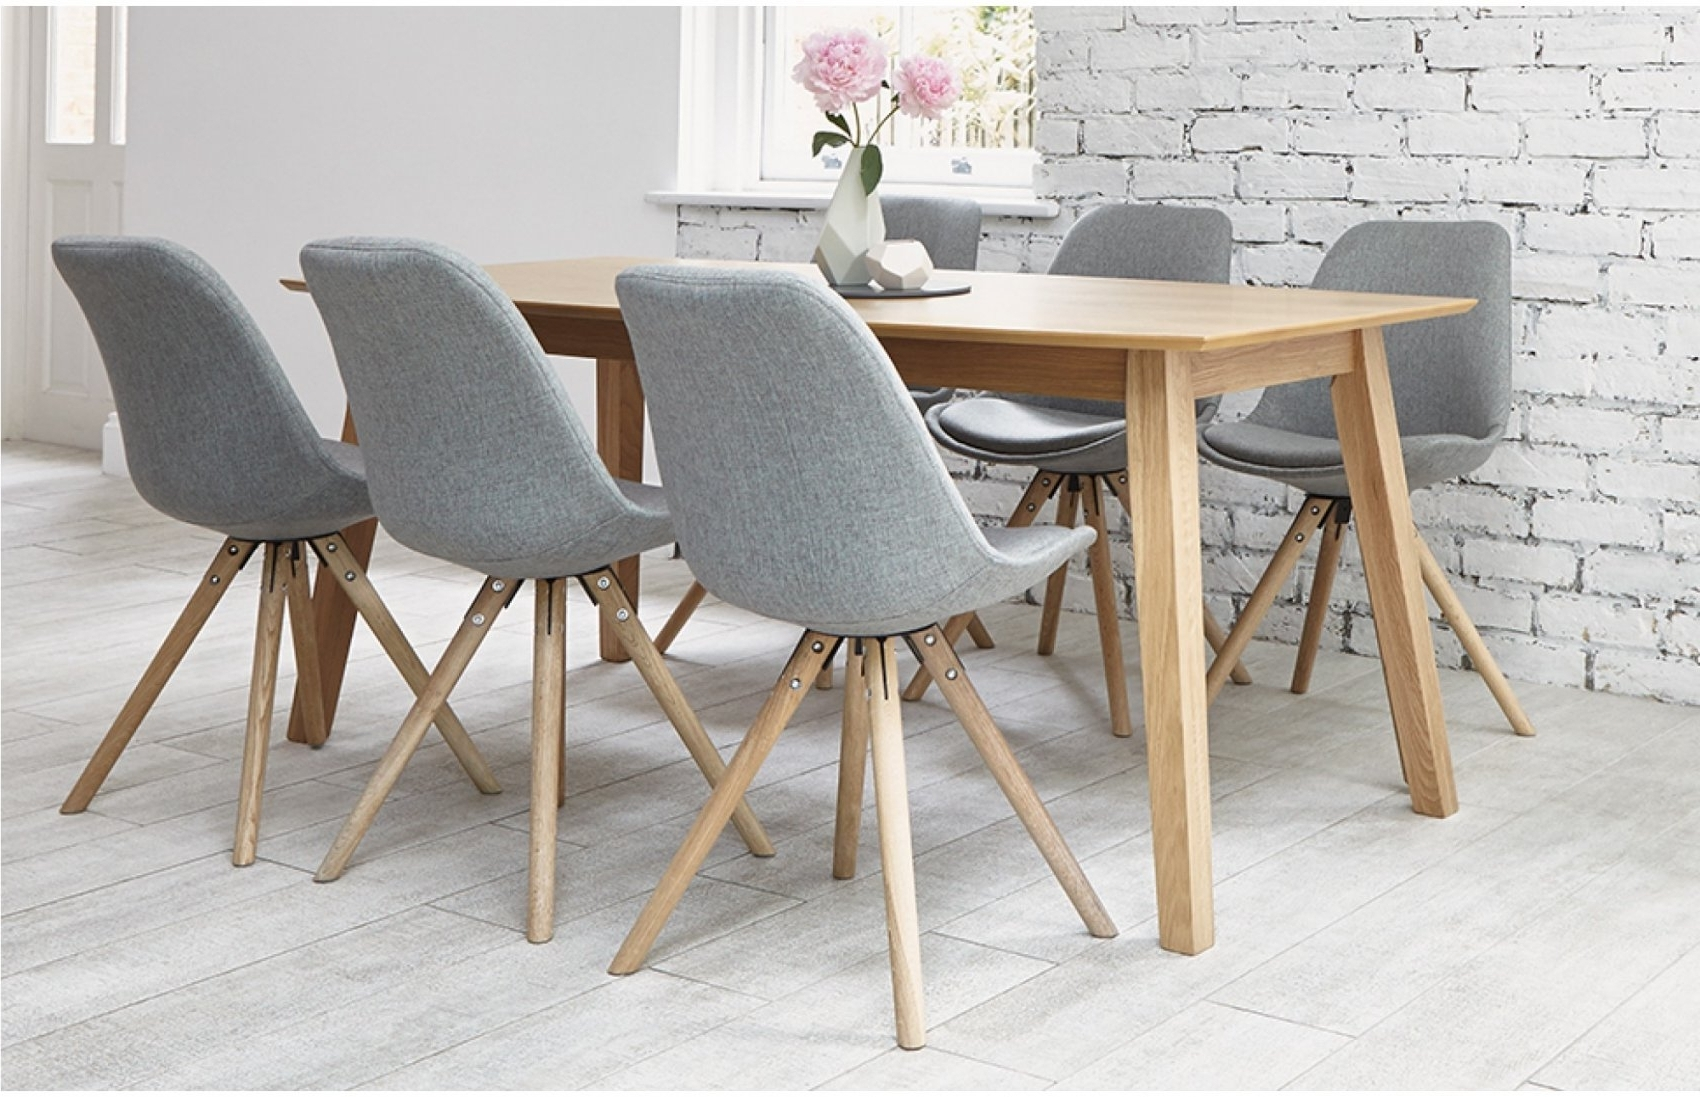 6 Seat Dining Tables regarding Well known 6 Seater Dining Sets Grey Home Furniture Out Out Navy Upholstered